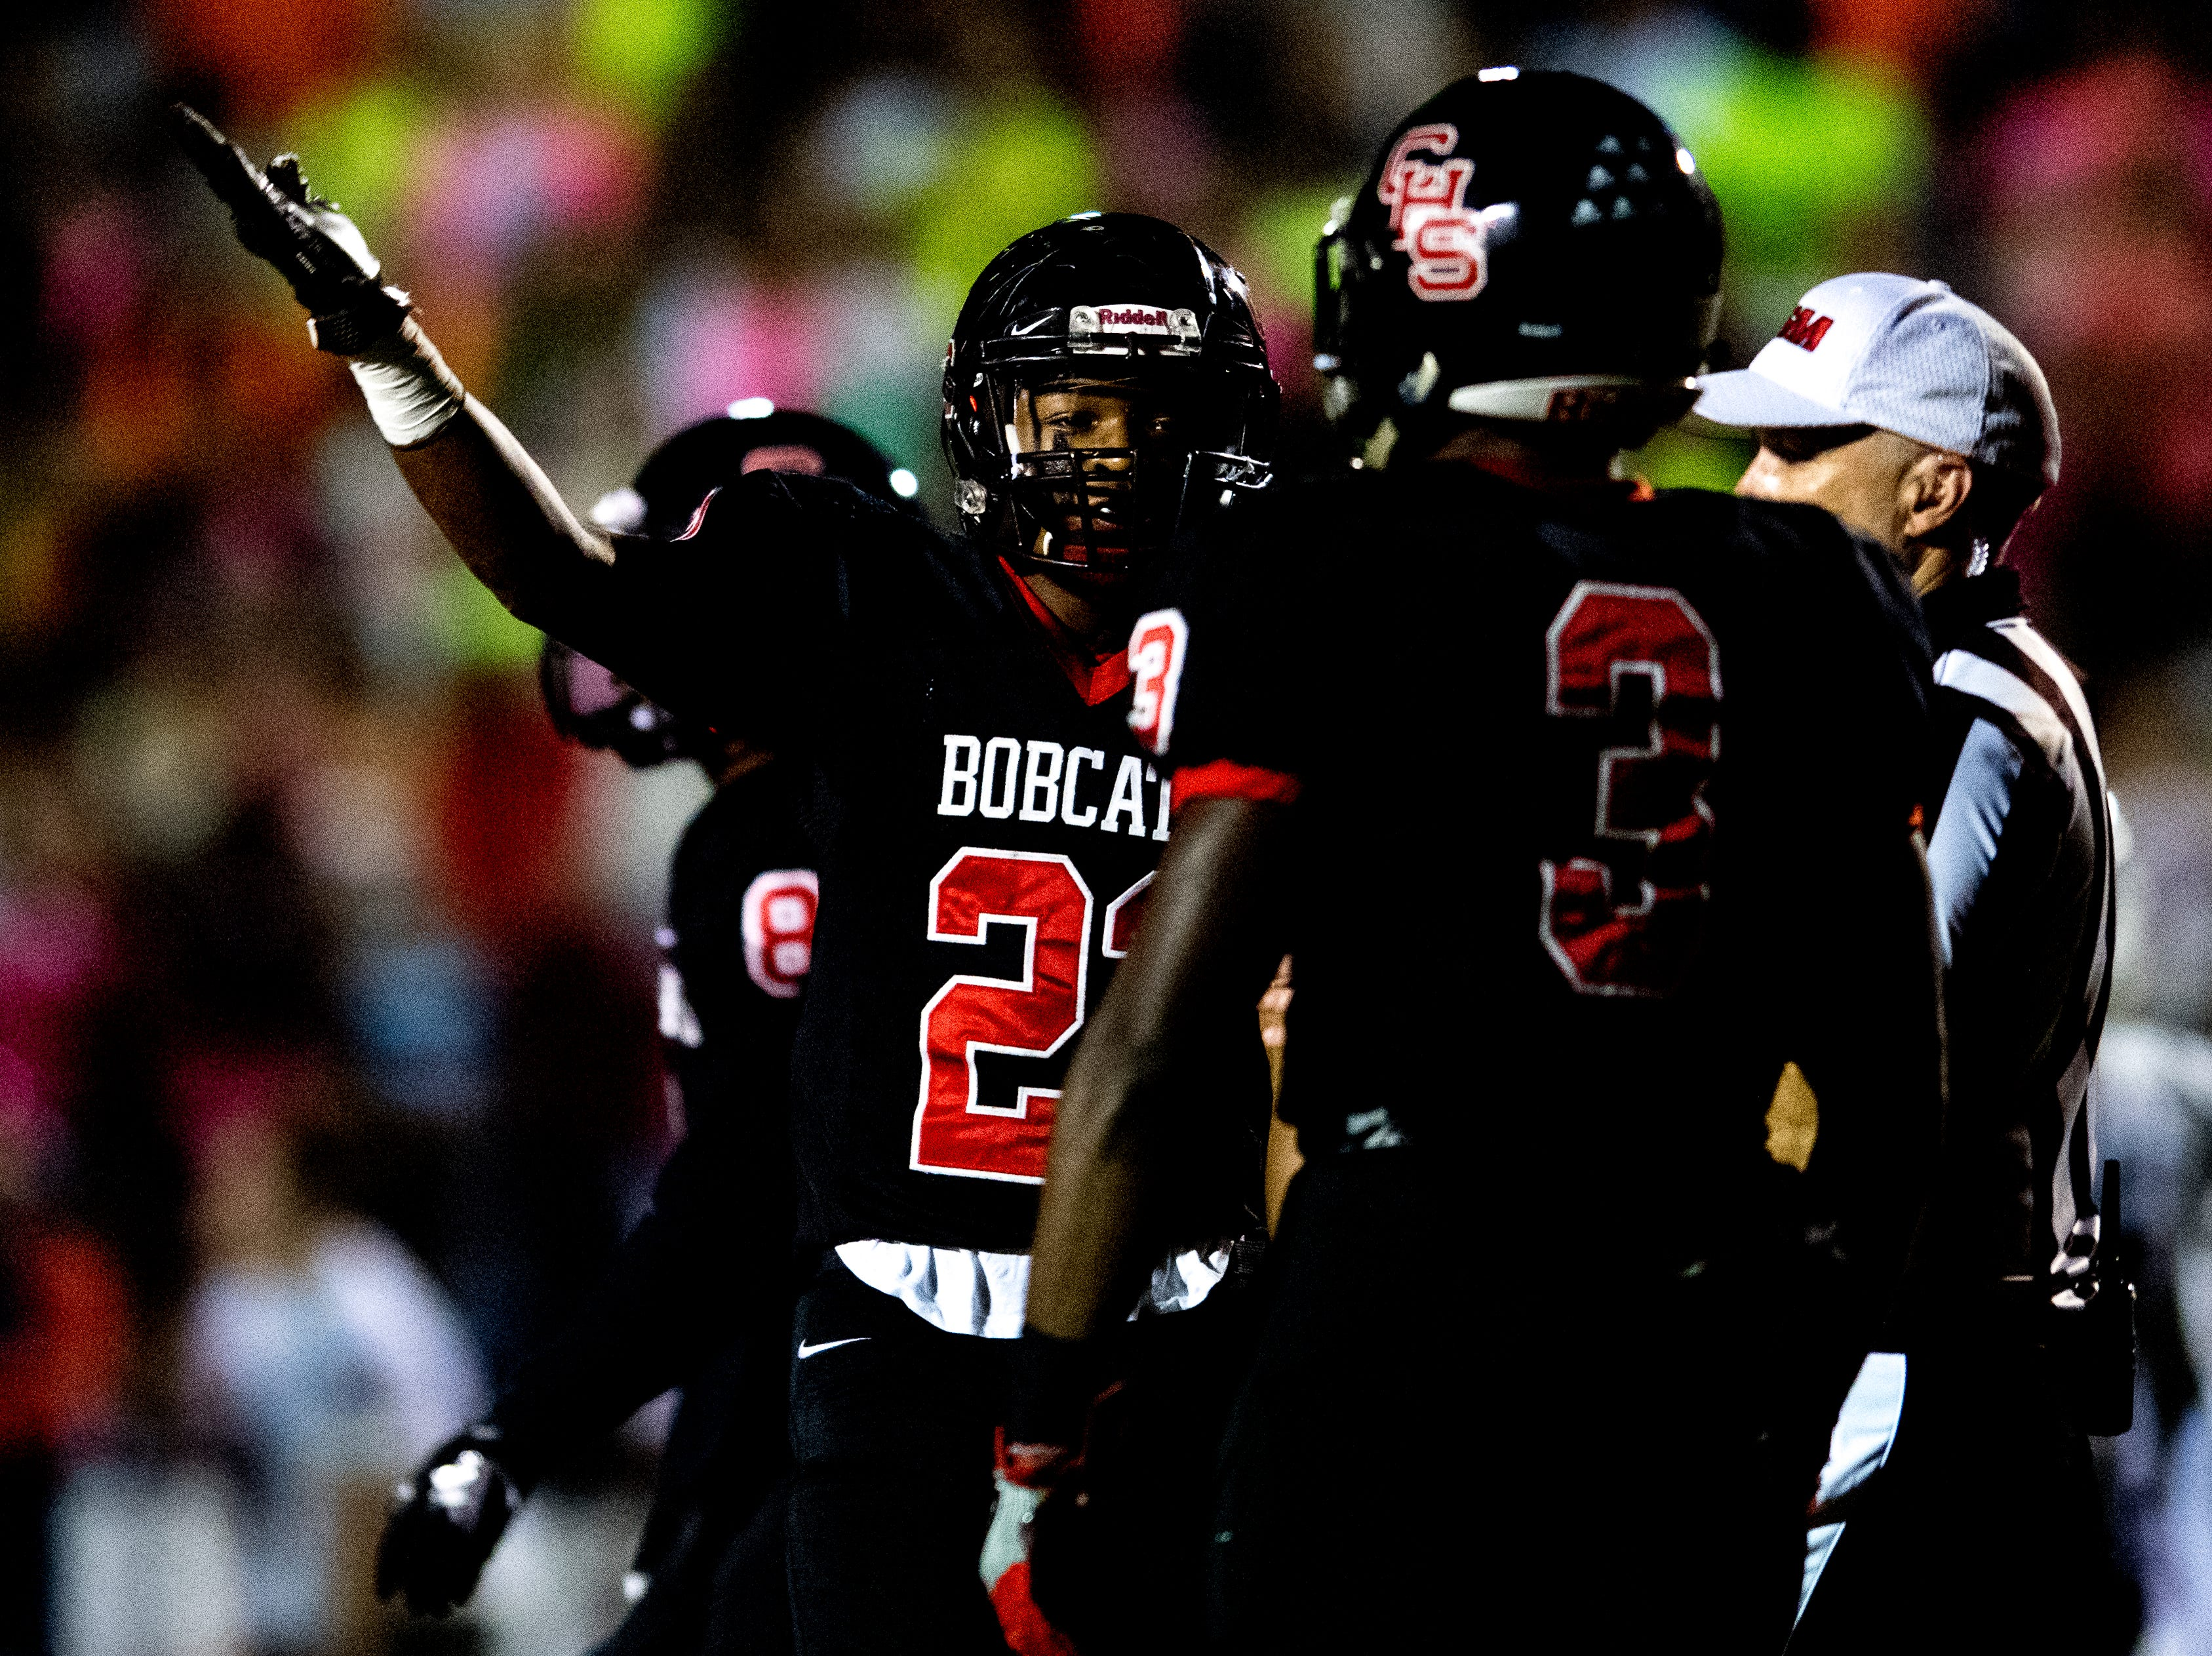 Central's Devone Moss (22) congratulates Xavier Washington (3) on his play during a football game between Central and South-Doyle at Central High School in Knoxville, Tennessee on Friday, October 19, 2018.